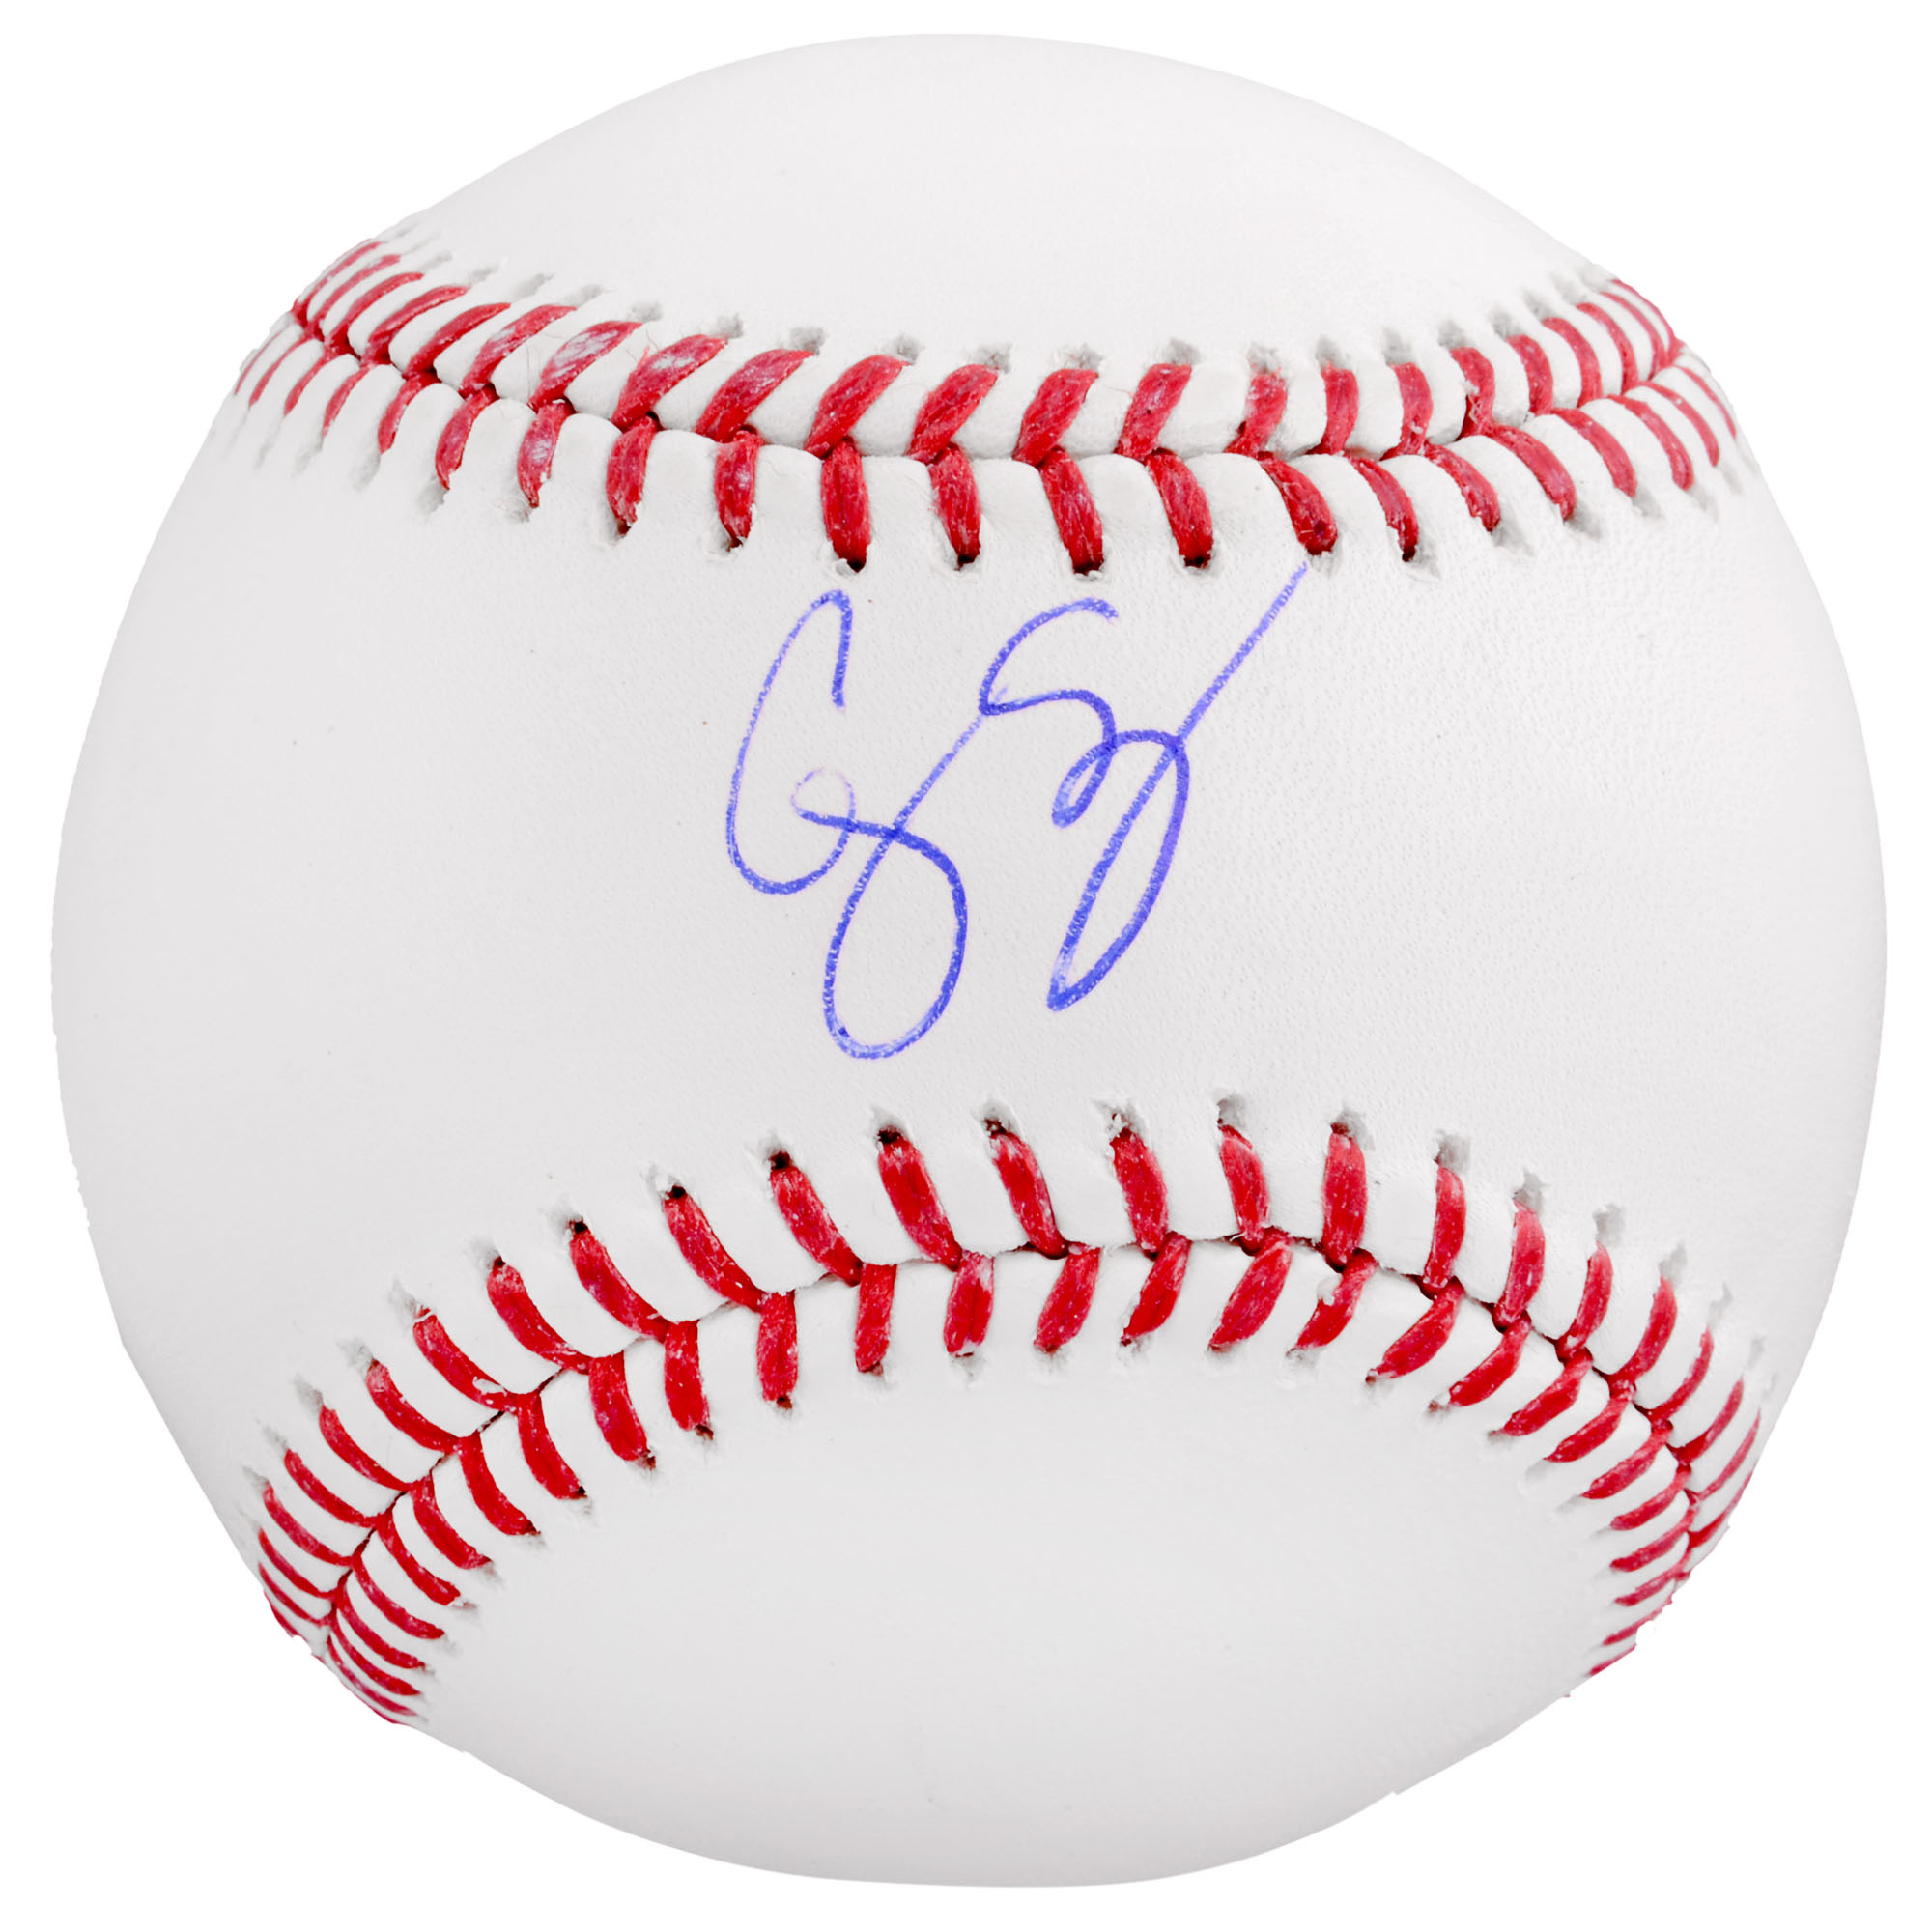 Corey Seager Los Angeles Dodgers Autographed Baseball - No Size